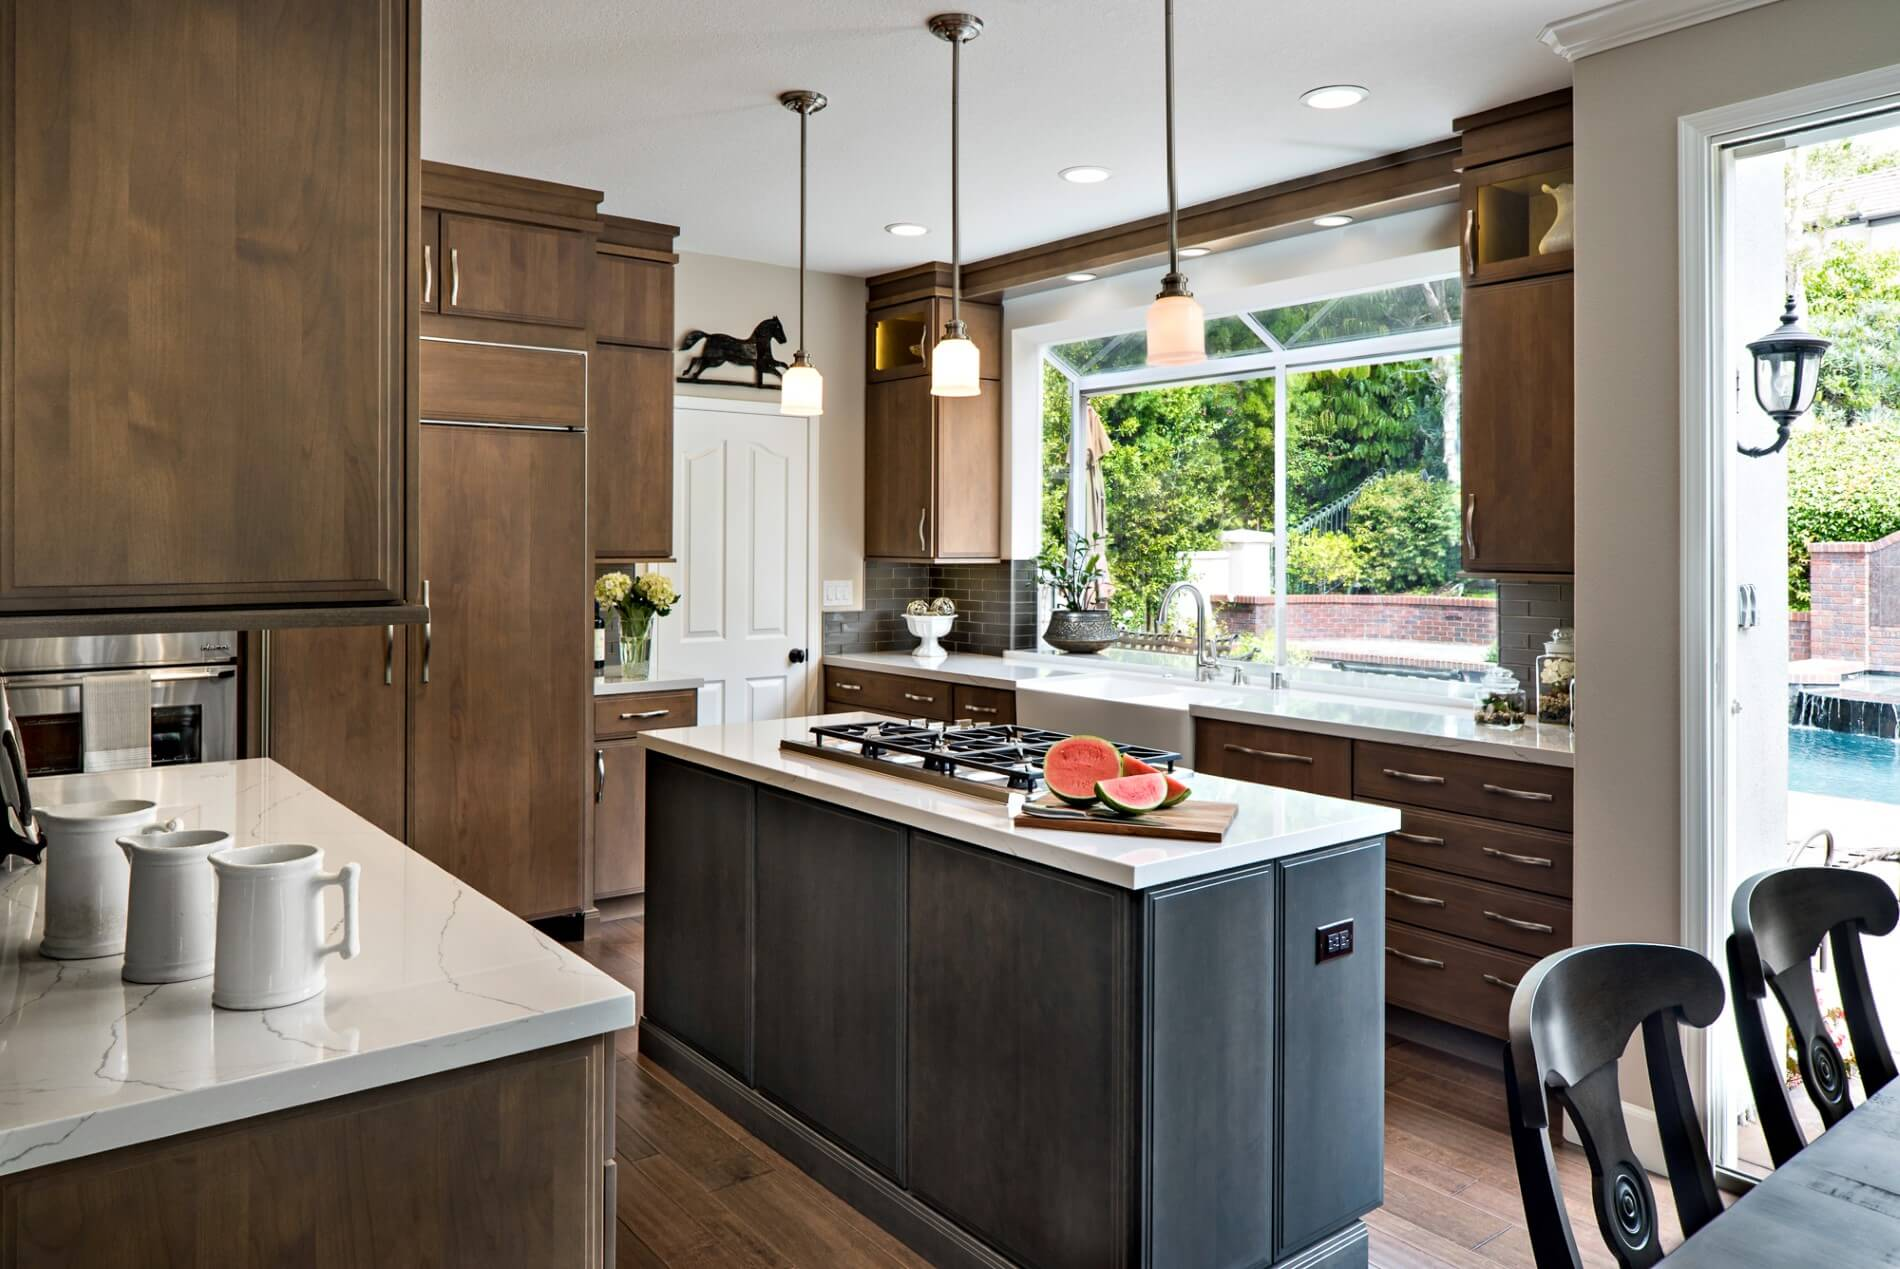 Kitchen Remodel with Island, Luxury Home Remodel, Design Build Remodeling Orange County